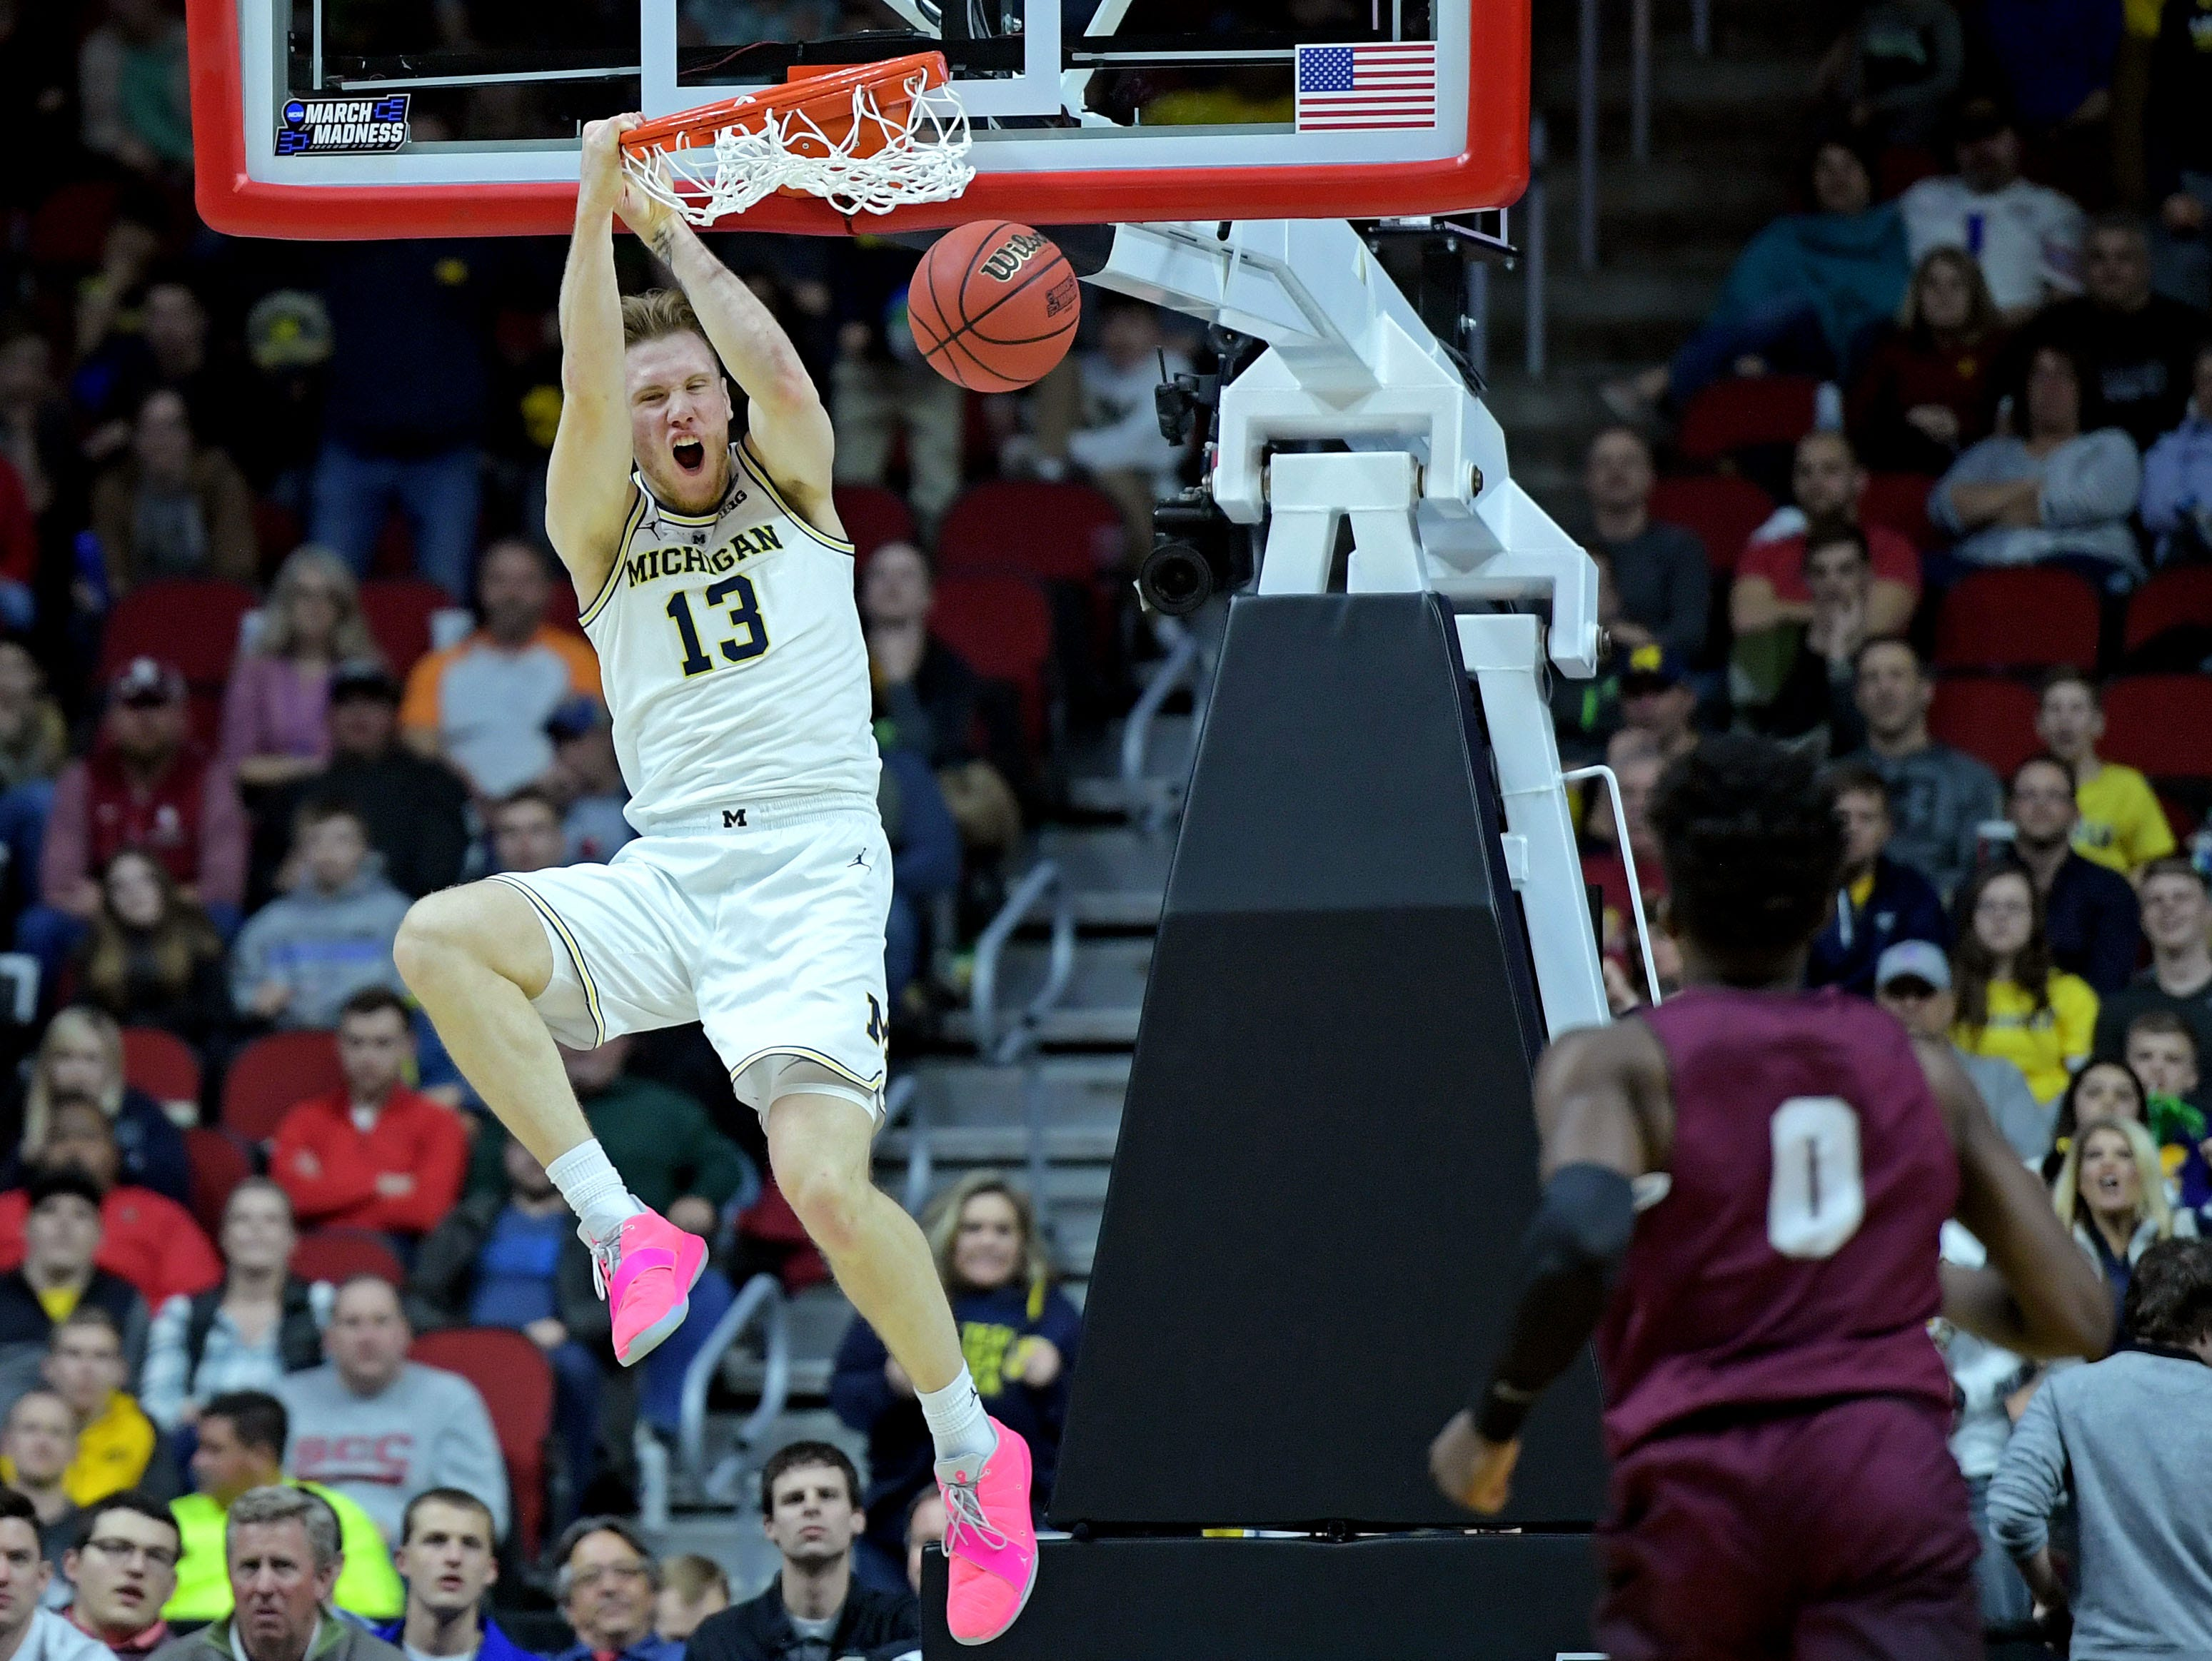 First round: Michigan forward Ignas Brazdeikis dunks the ball during the Wolverines' dominant win over Montana.